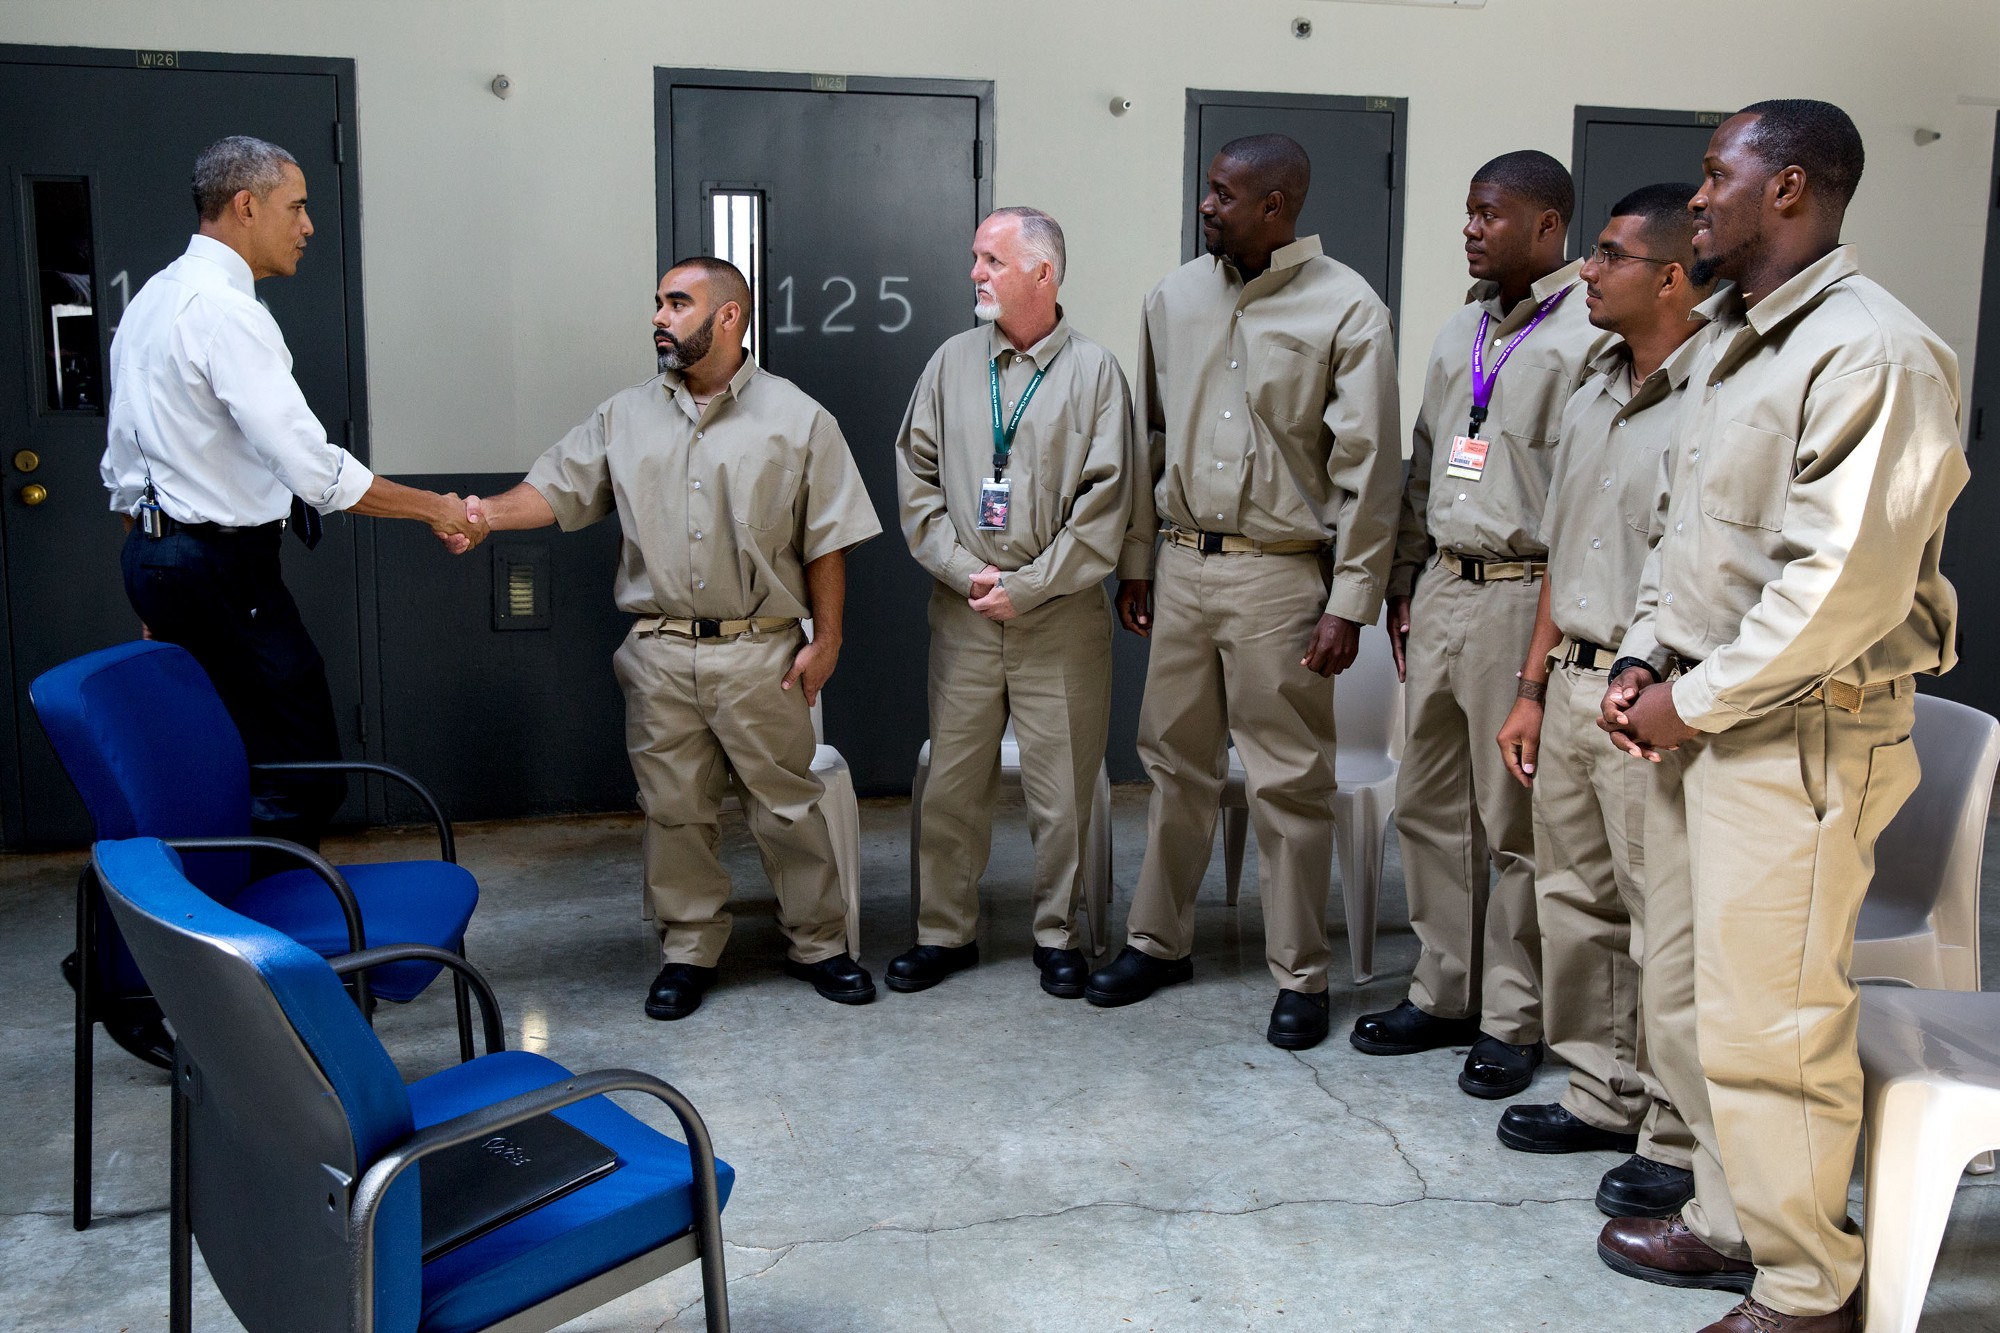 President Obama greets inmates. (Official White House Photo by Pete Souza)